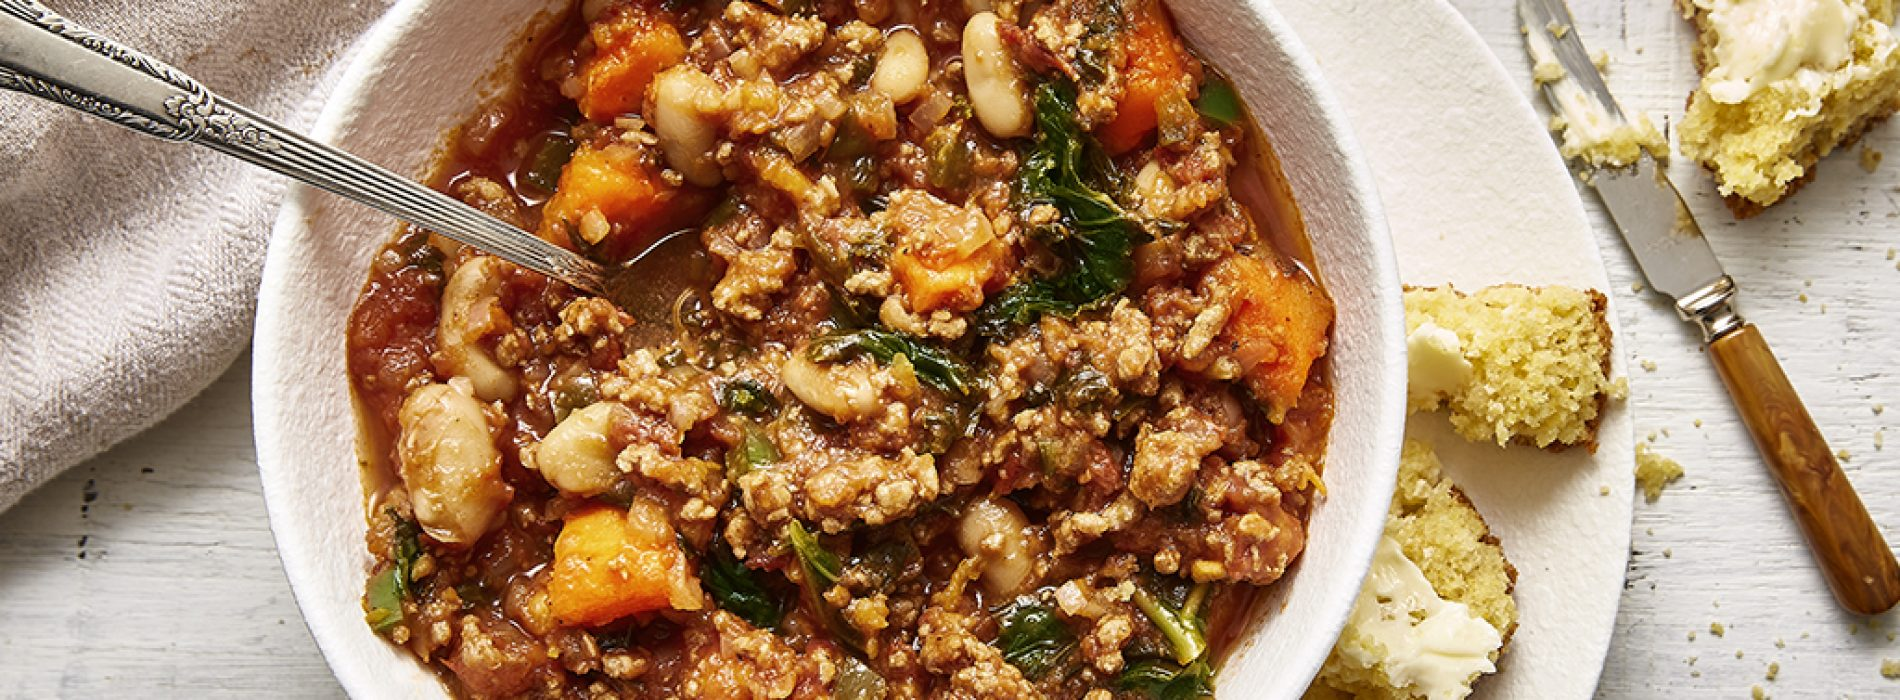 Turkey, Kale and Sweet Potato Chili